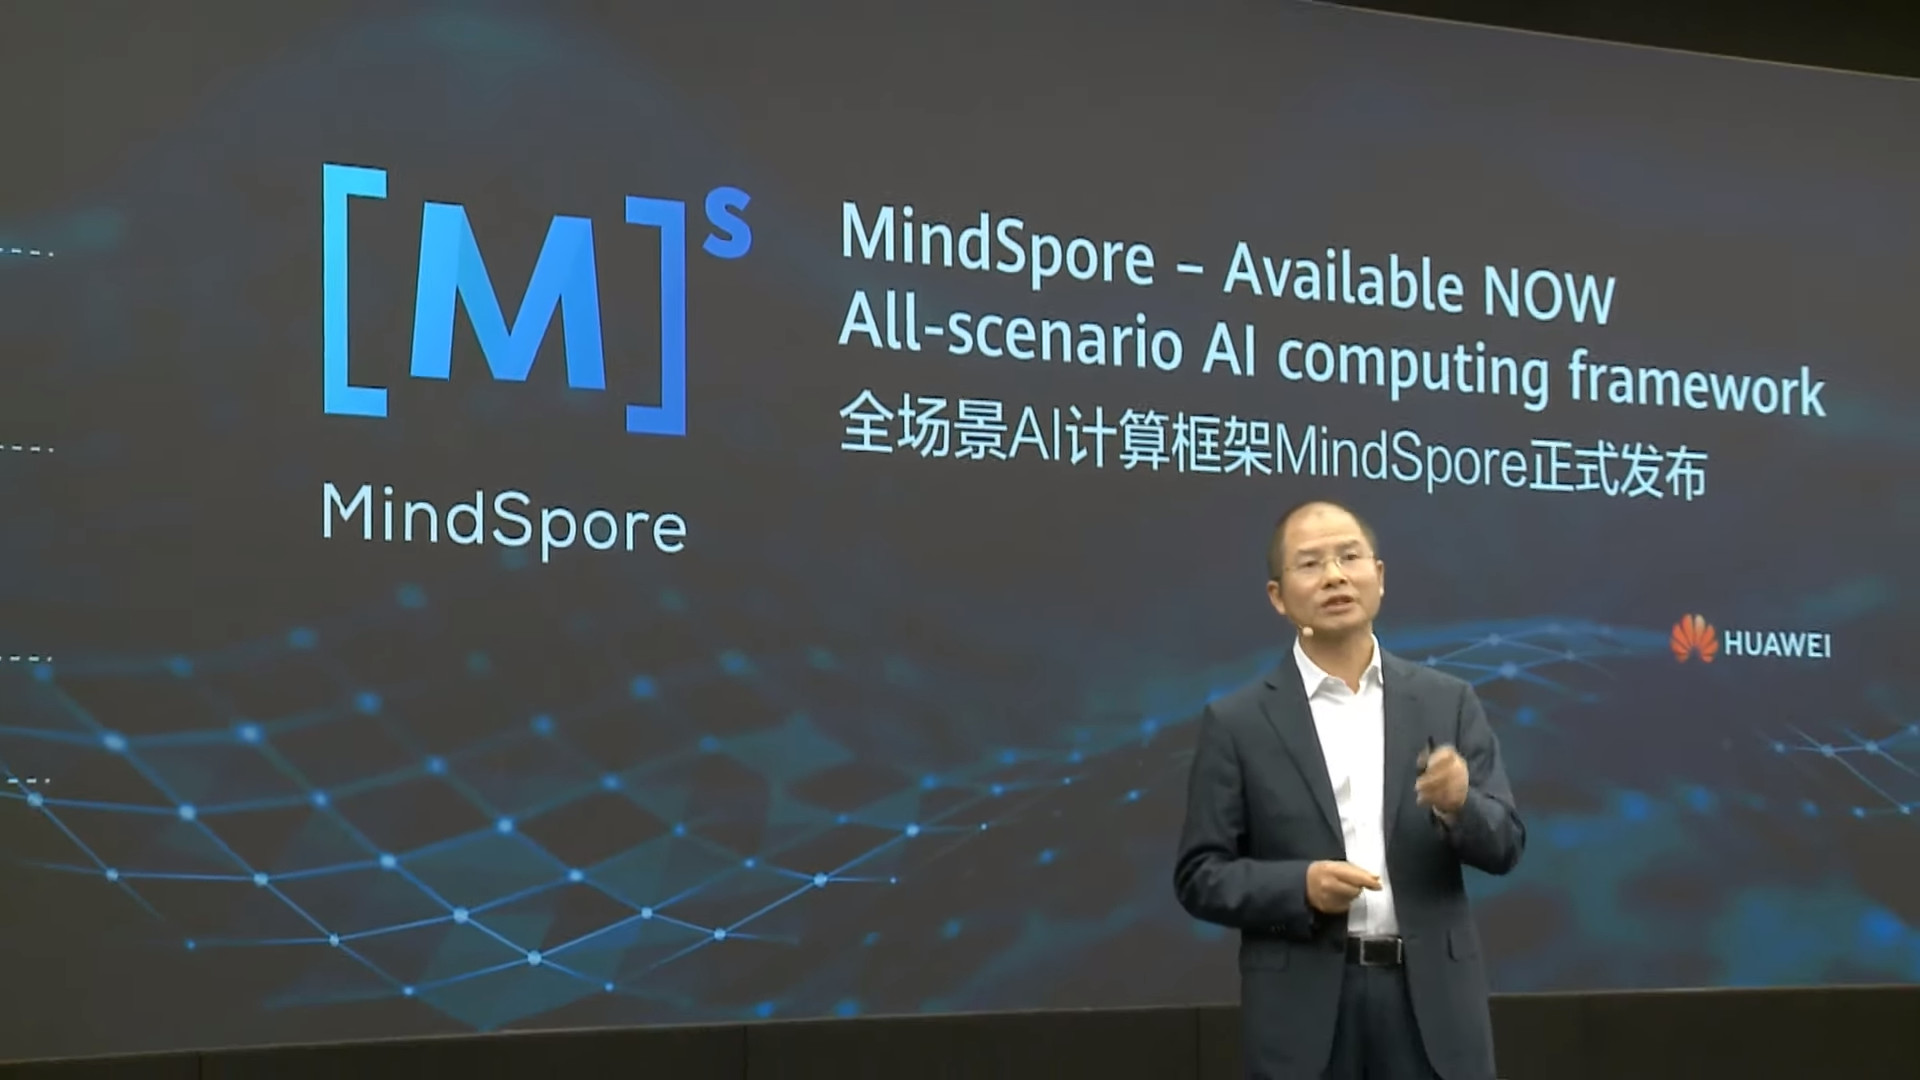 Huawei Ascend 910 Is The World's Most Powerful AI Processor